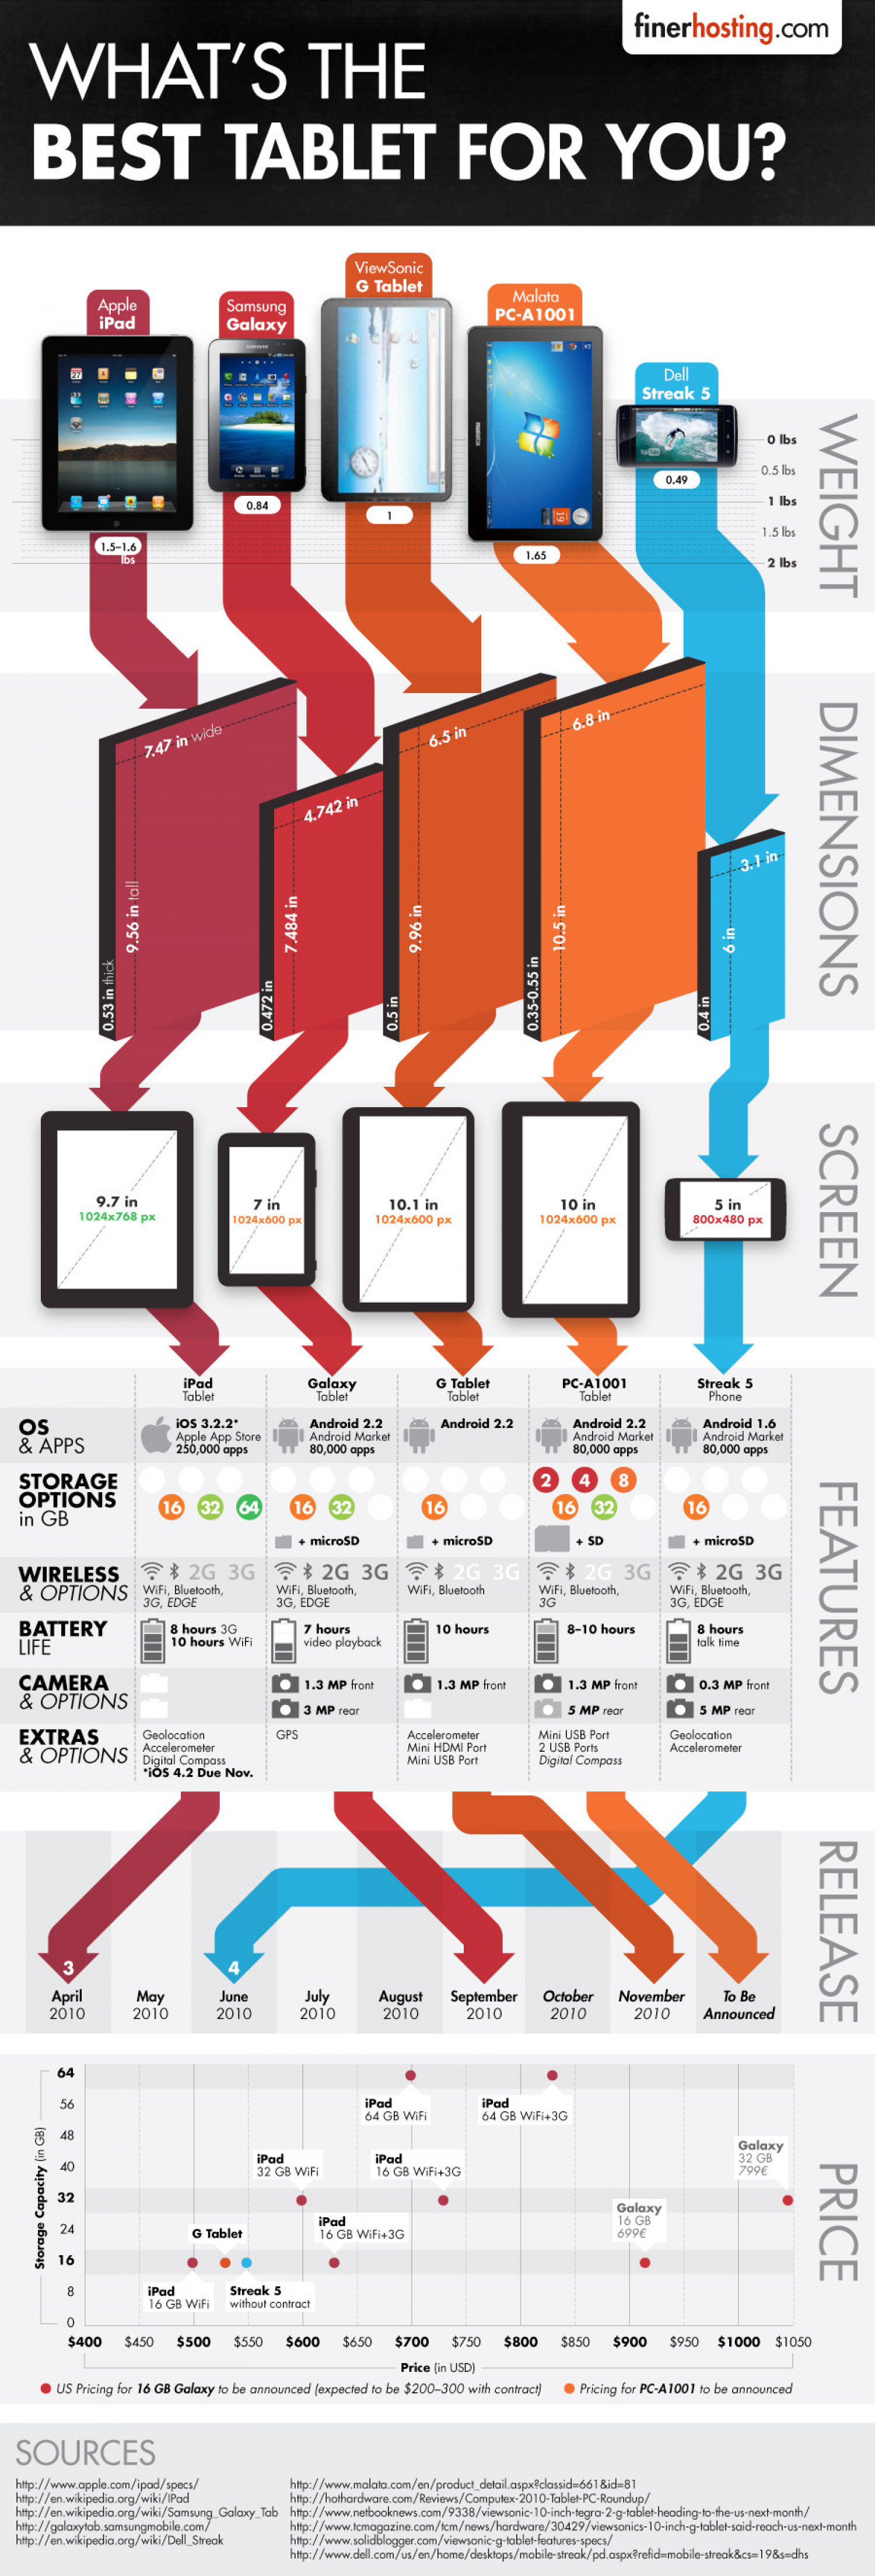 What's the Best Tablet For You? Infographic